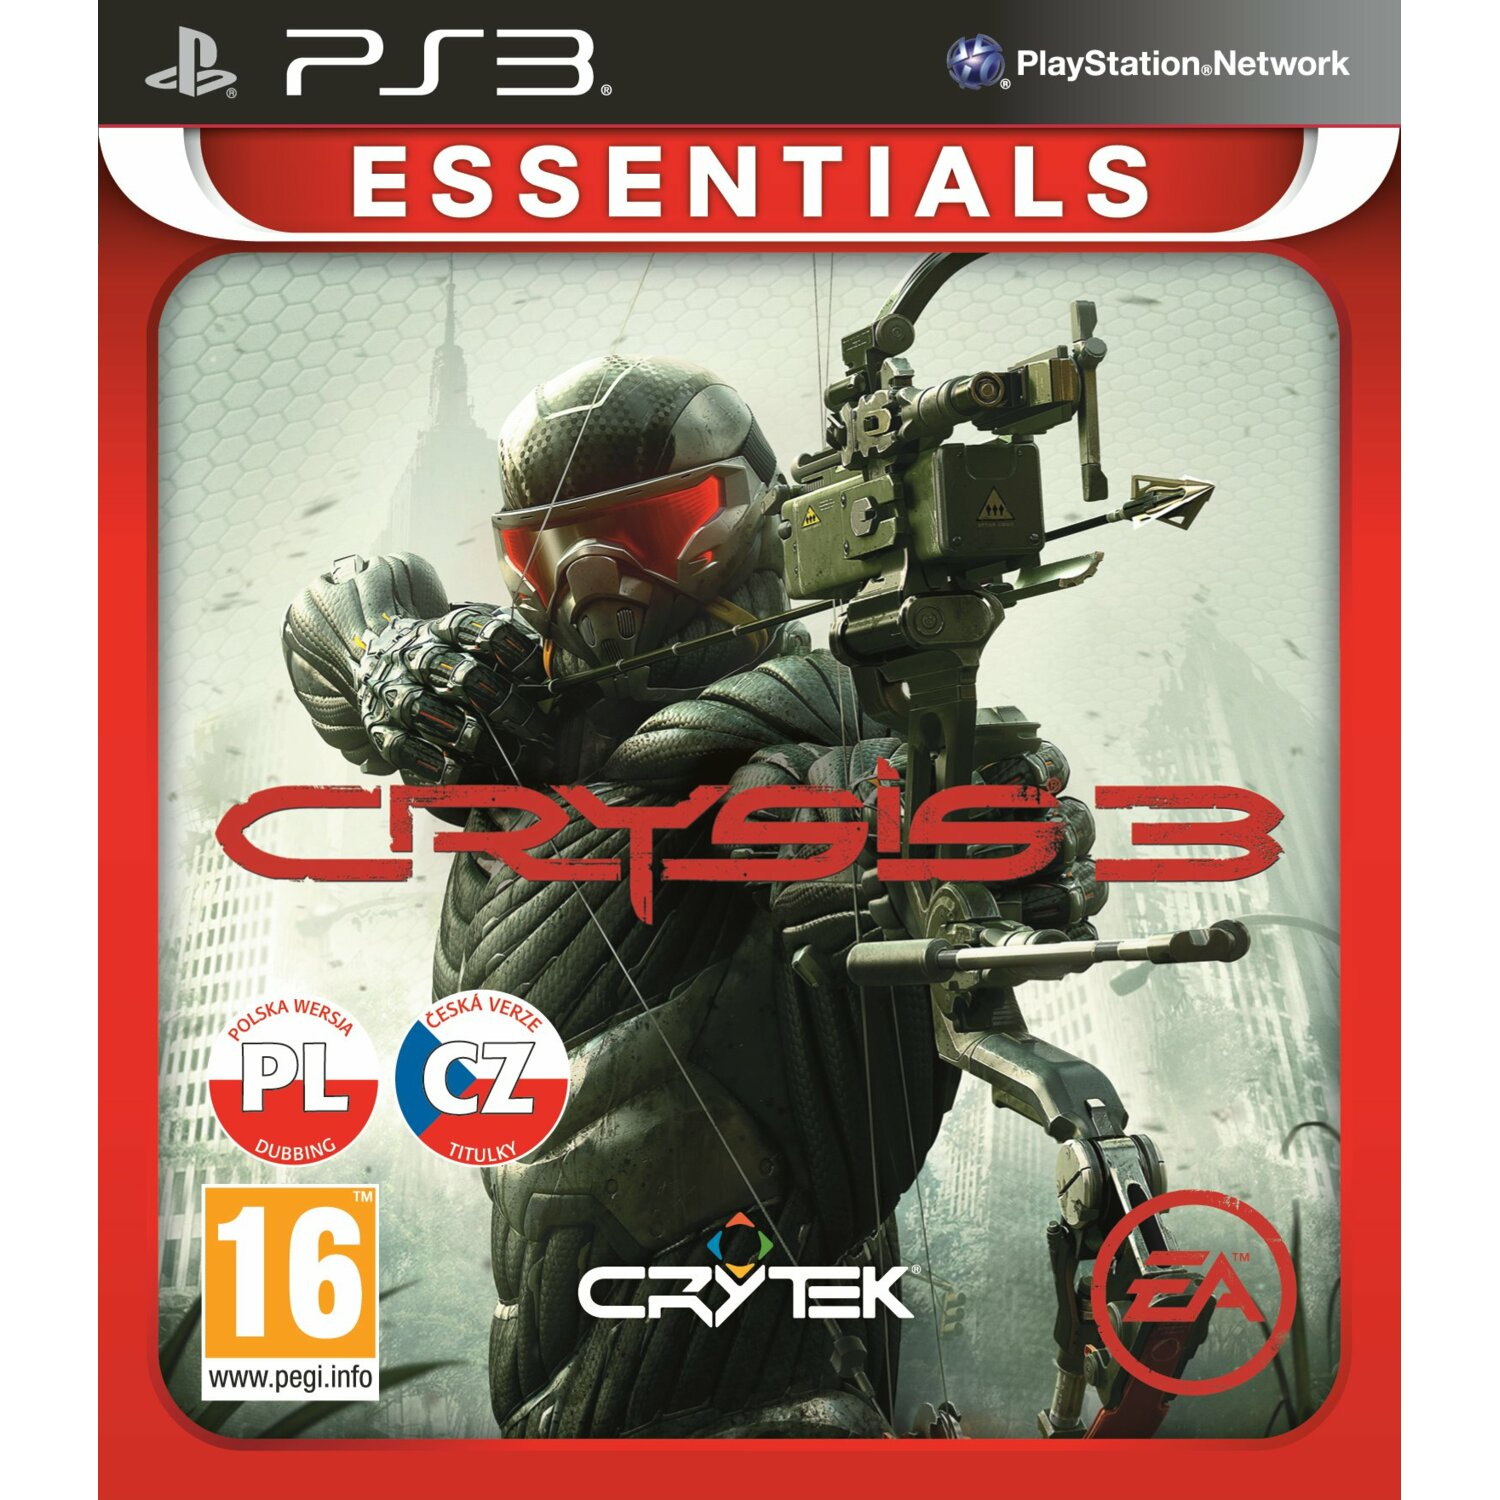 Gra PS3 ELECTRONIC ARTS Crysis 3 Essentials